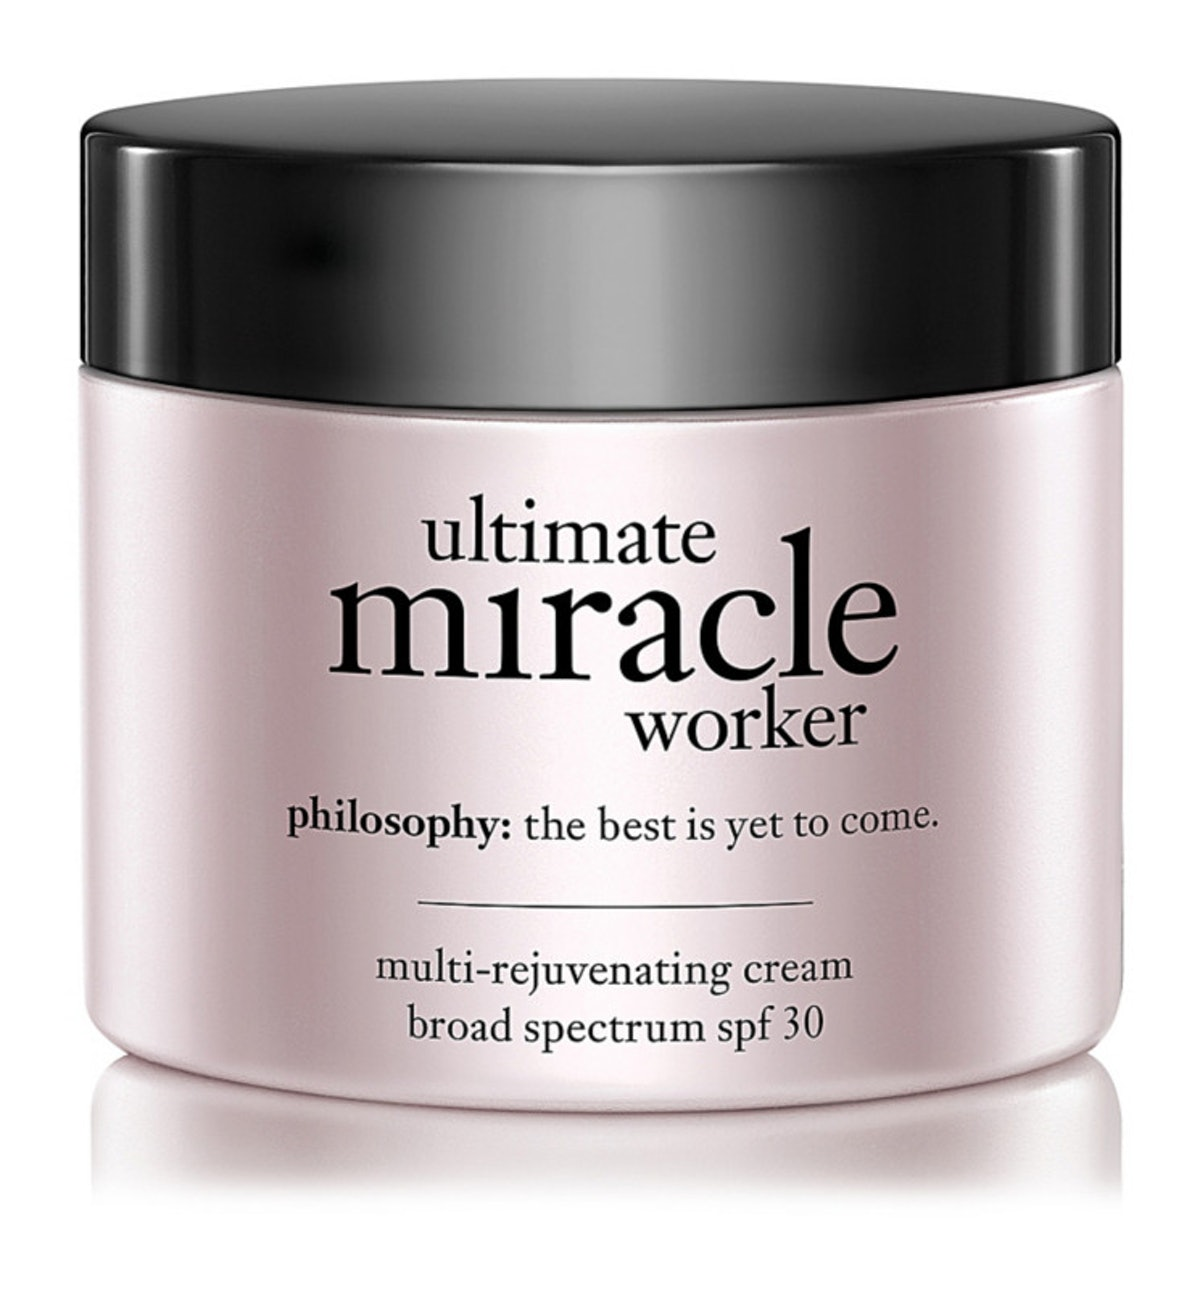 Philosophy's Ultimate Miracle Worker SPF 30